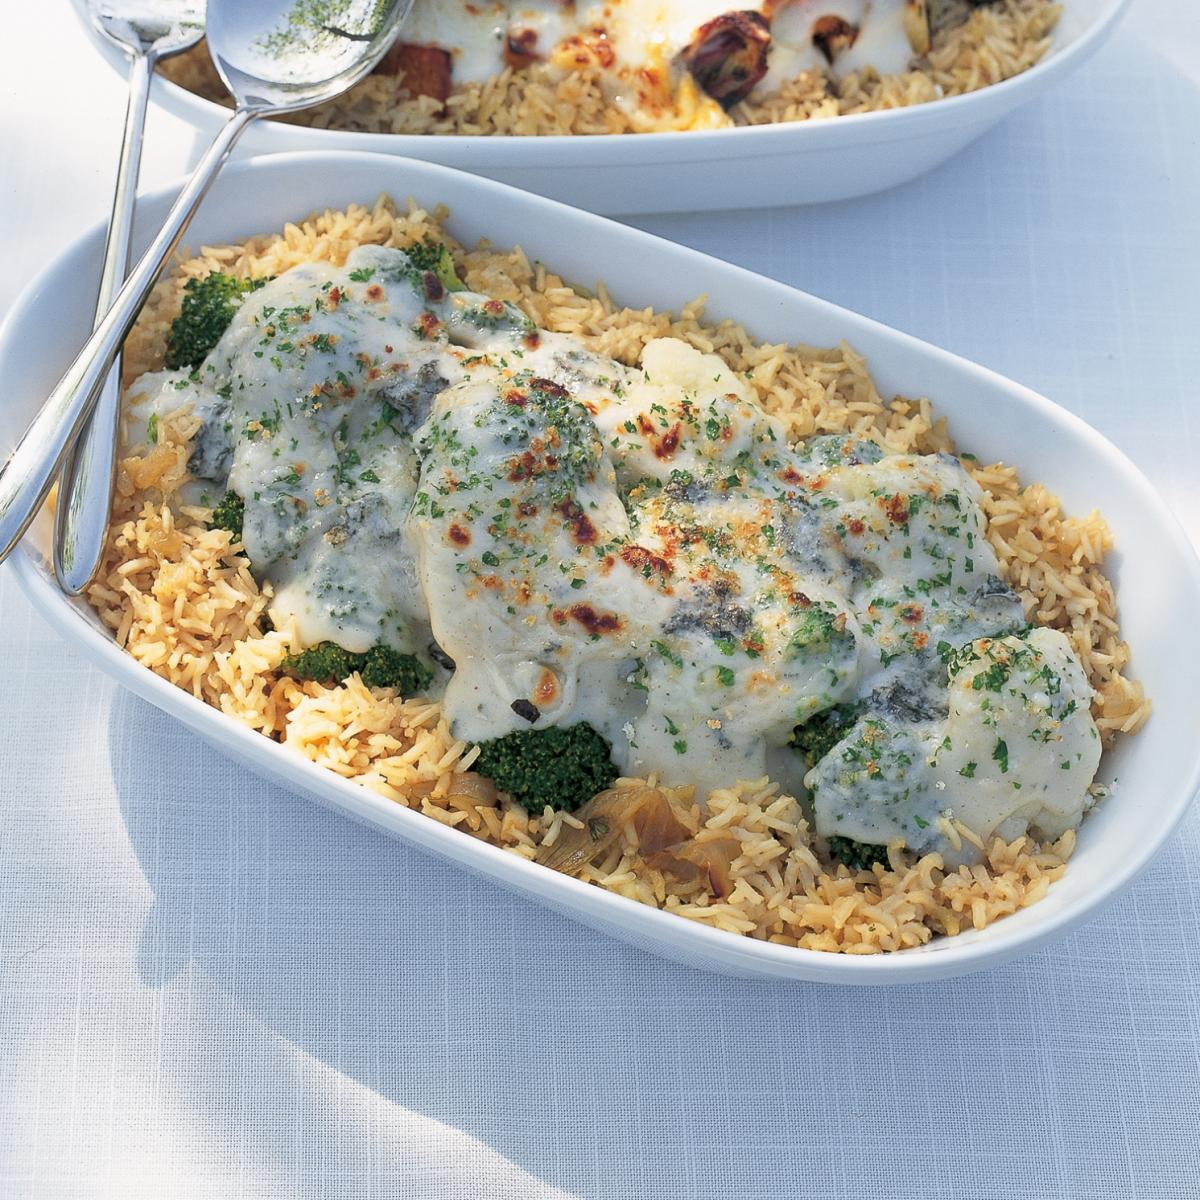 A picture of Delia's Cauliflower and Broccoli Gratin with Blue Cheese recipe